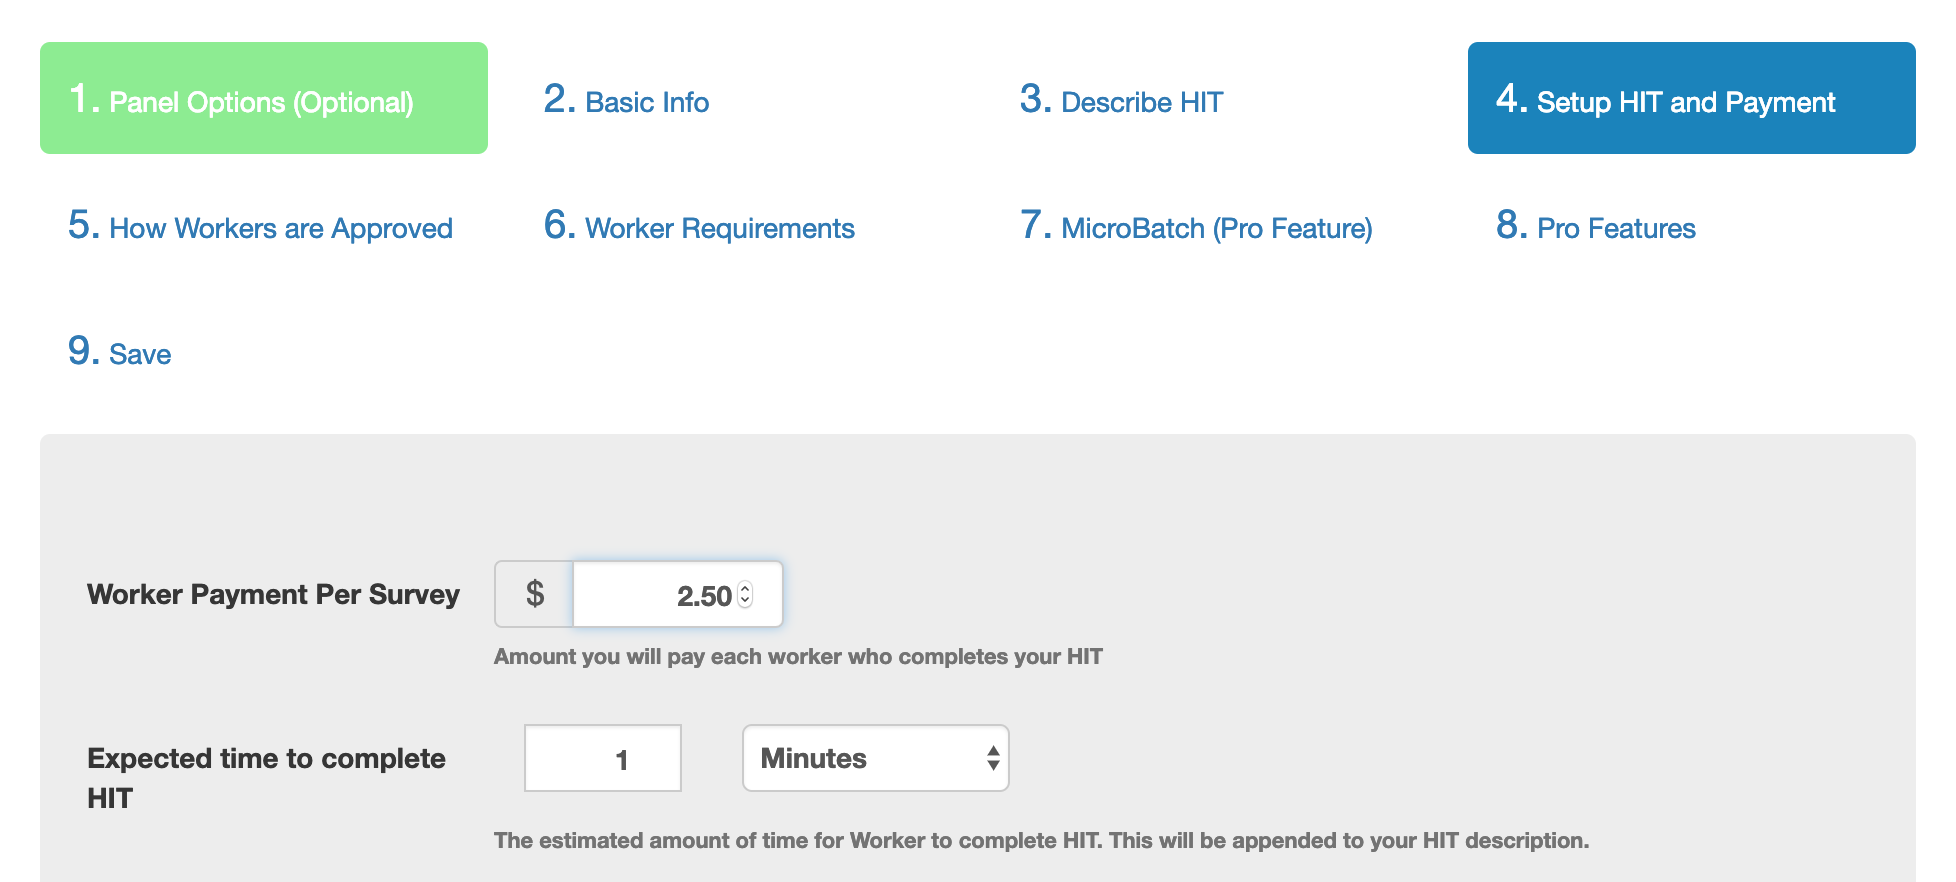 TurkPrime Setup HIT and Payment: Worker Payment